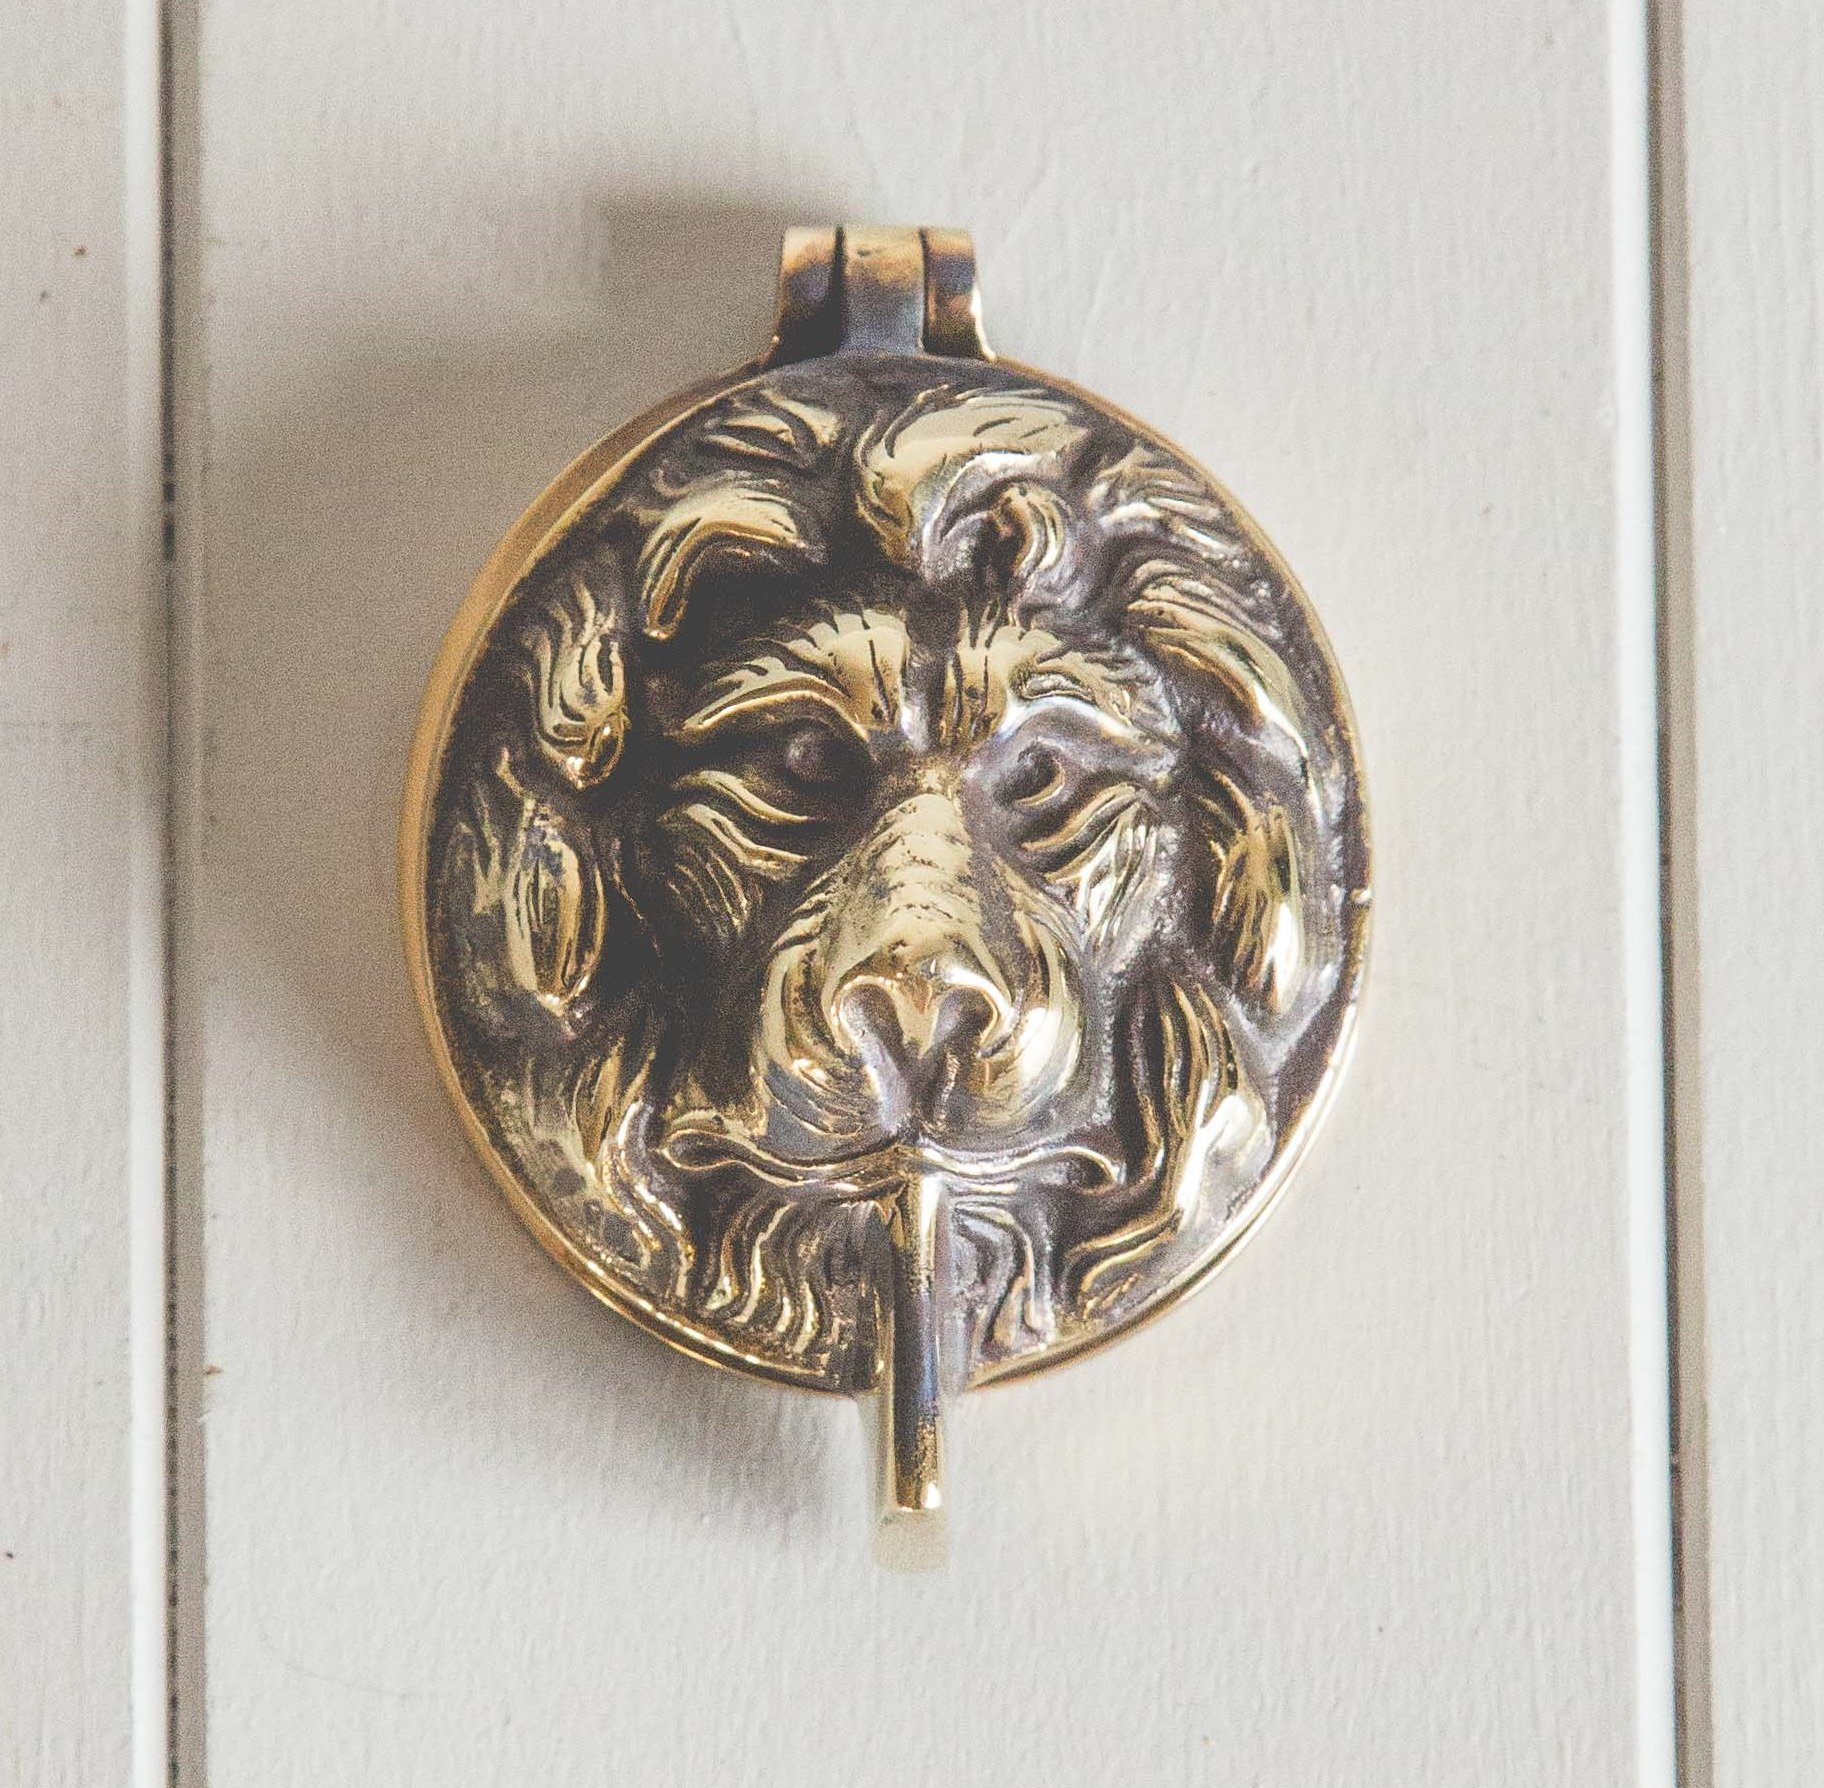 Lions Head Latch Key Cover - Aged Brass